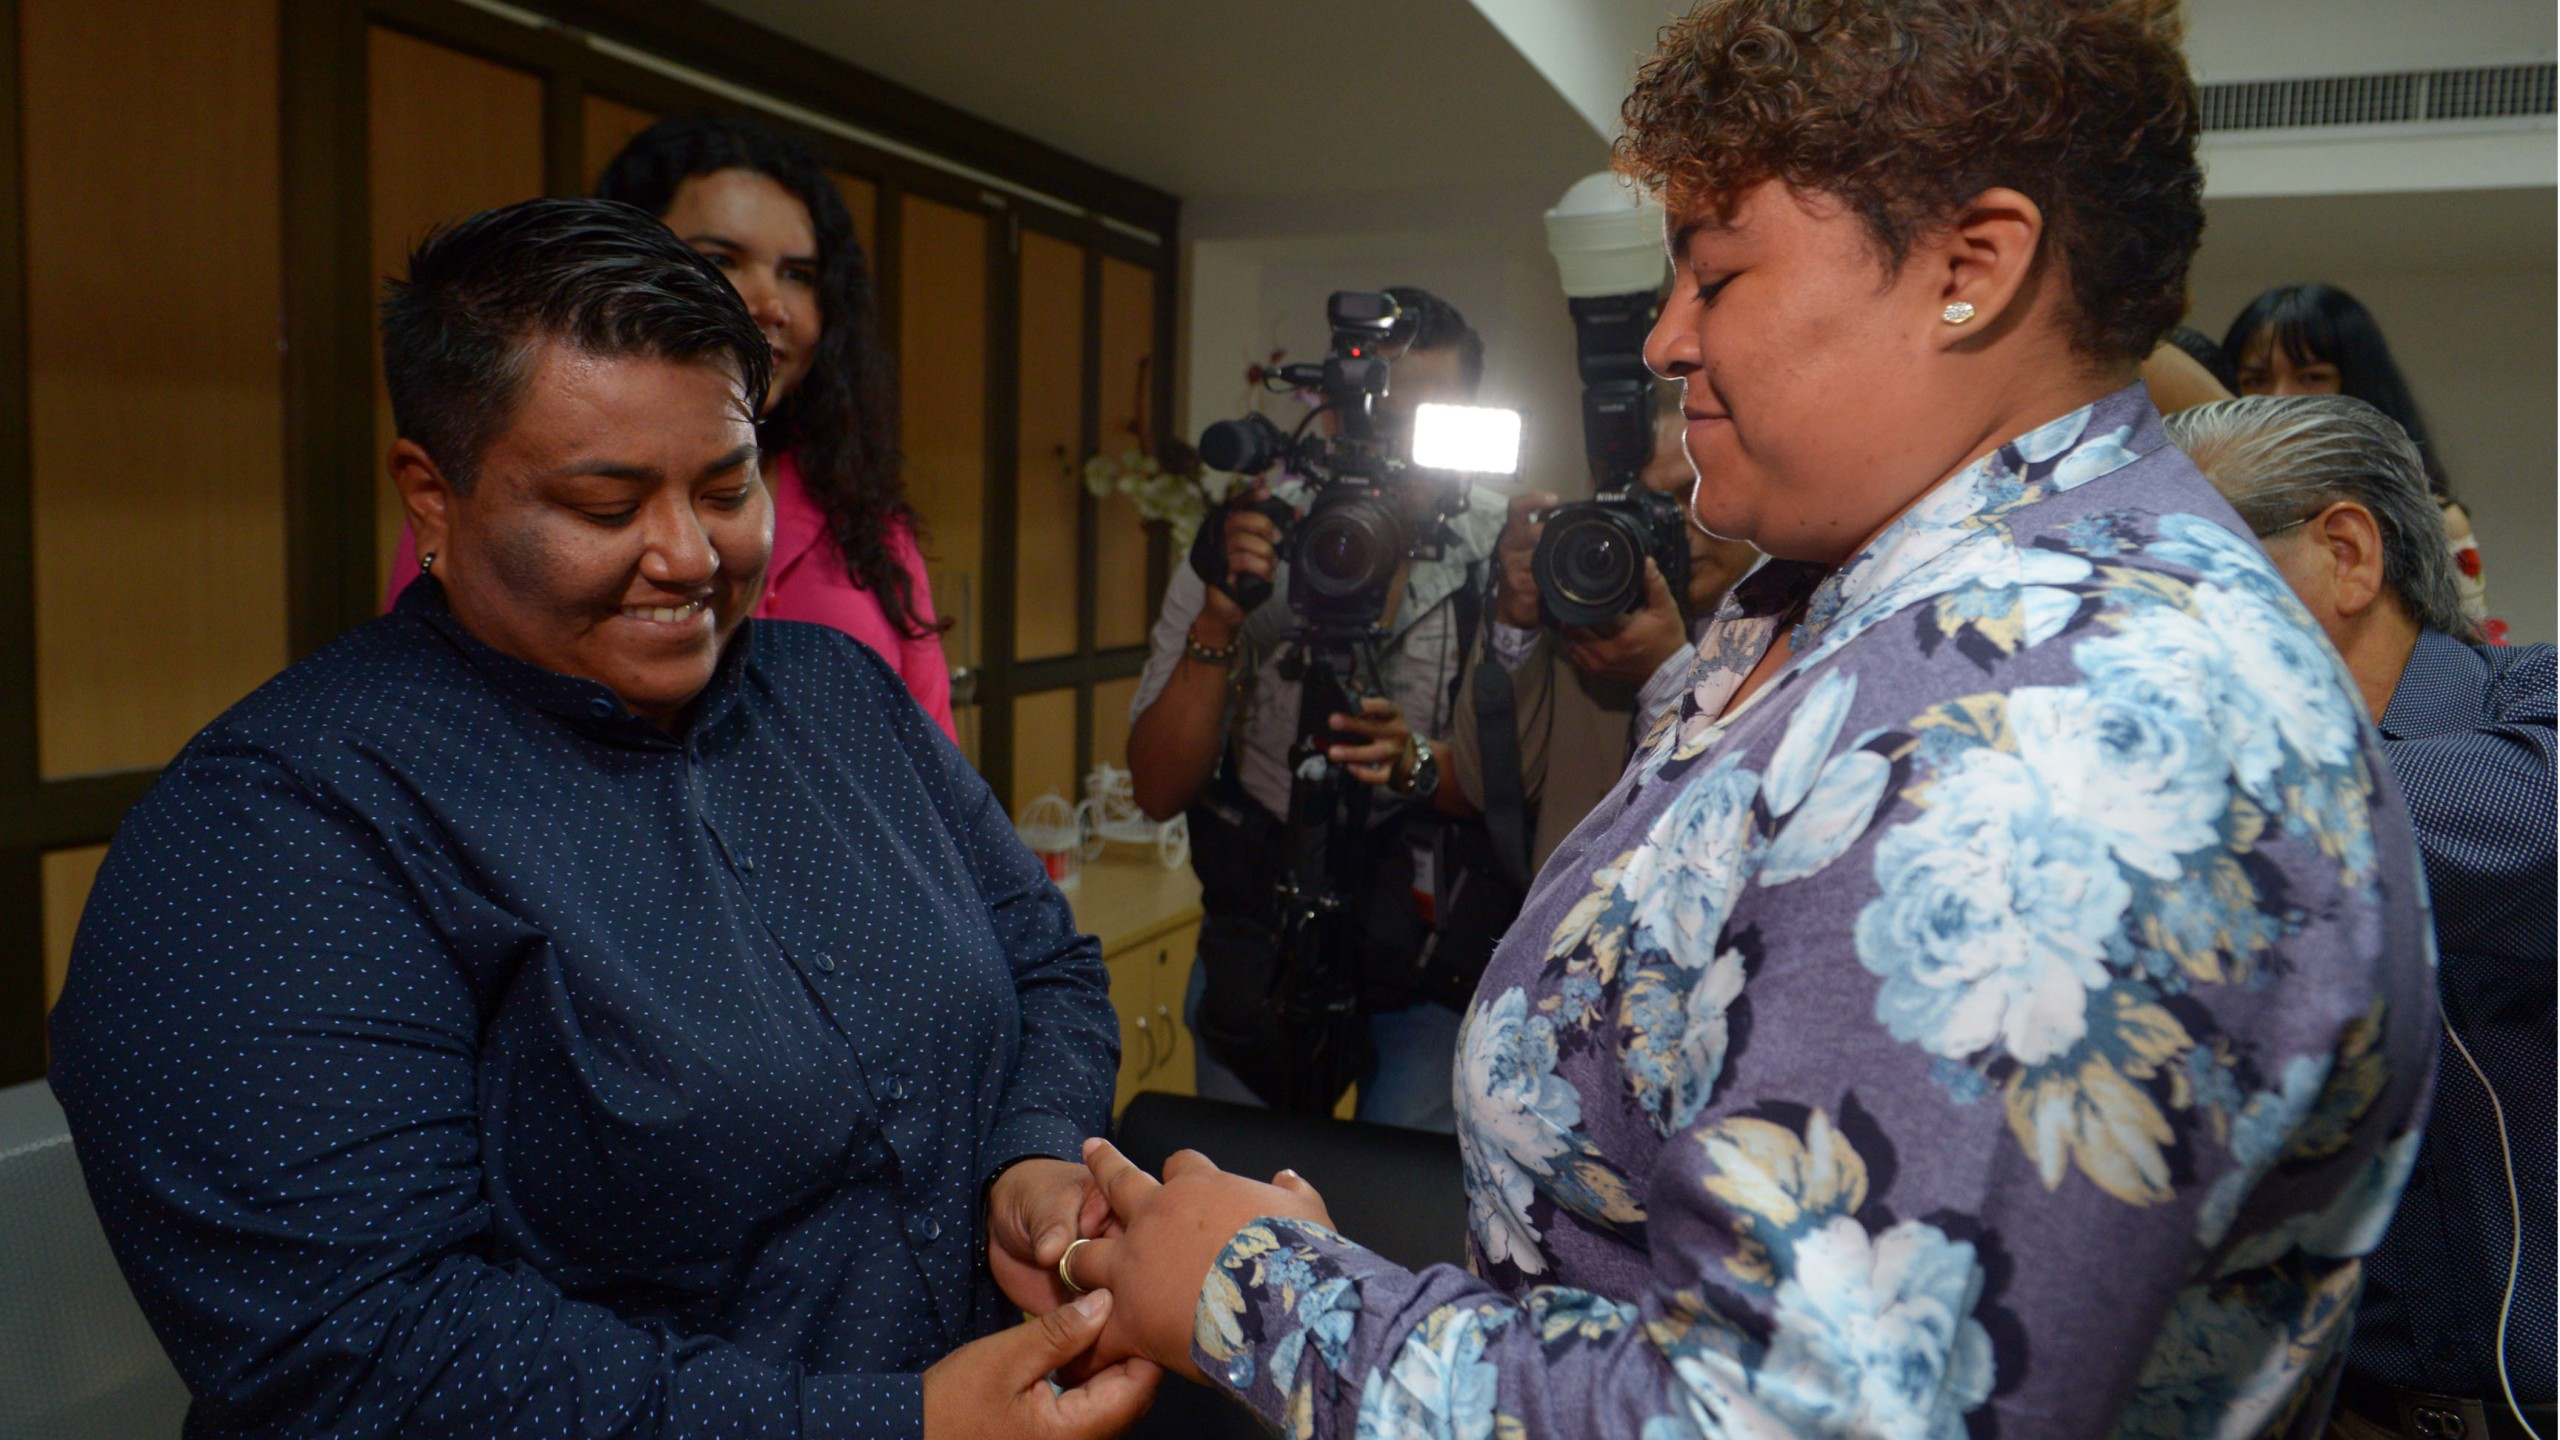 Alexandra Chavez (left) places a ring on the finger of Michelle Aviles during Ecuador's first same sex marriage at a registry office in Guayaquil on July 18, 2019. (Credit: MARCOS PIN/AFP/Getty Images)